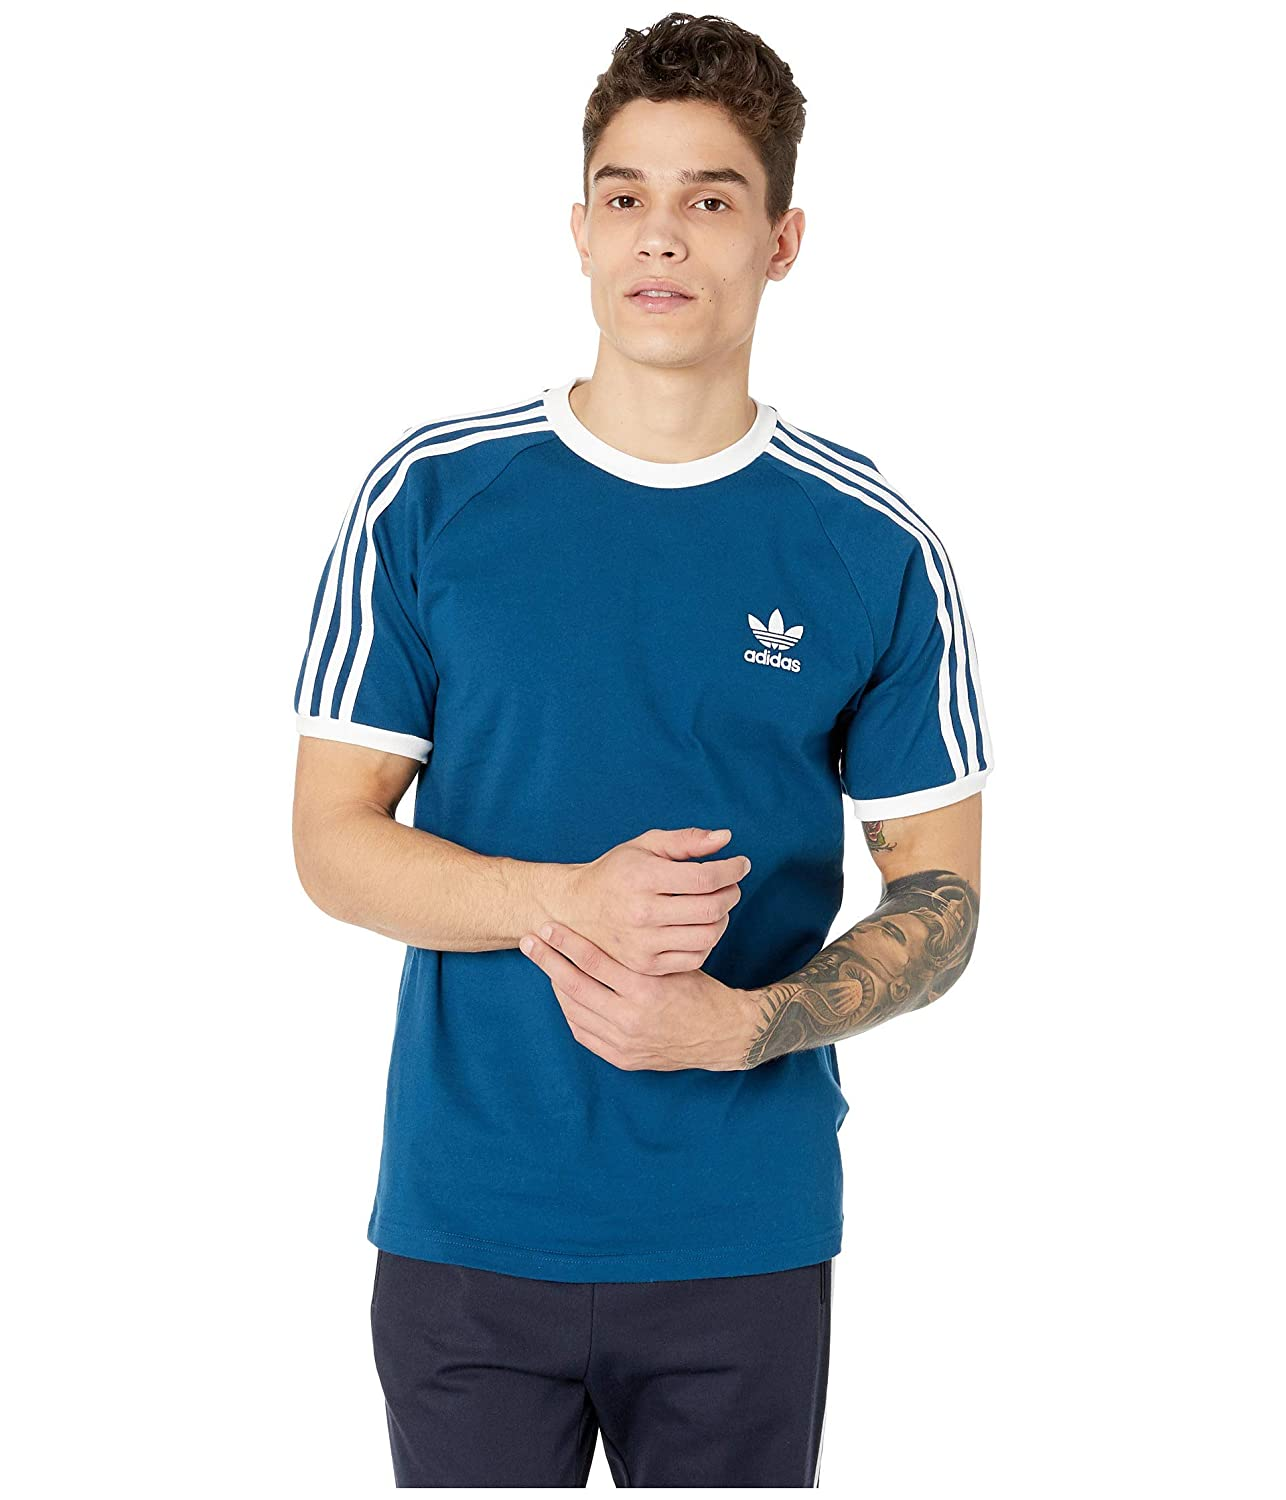 adidas Originals Men's 3 Stripes Tee, legend marine, X Large